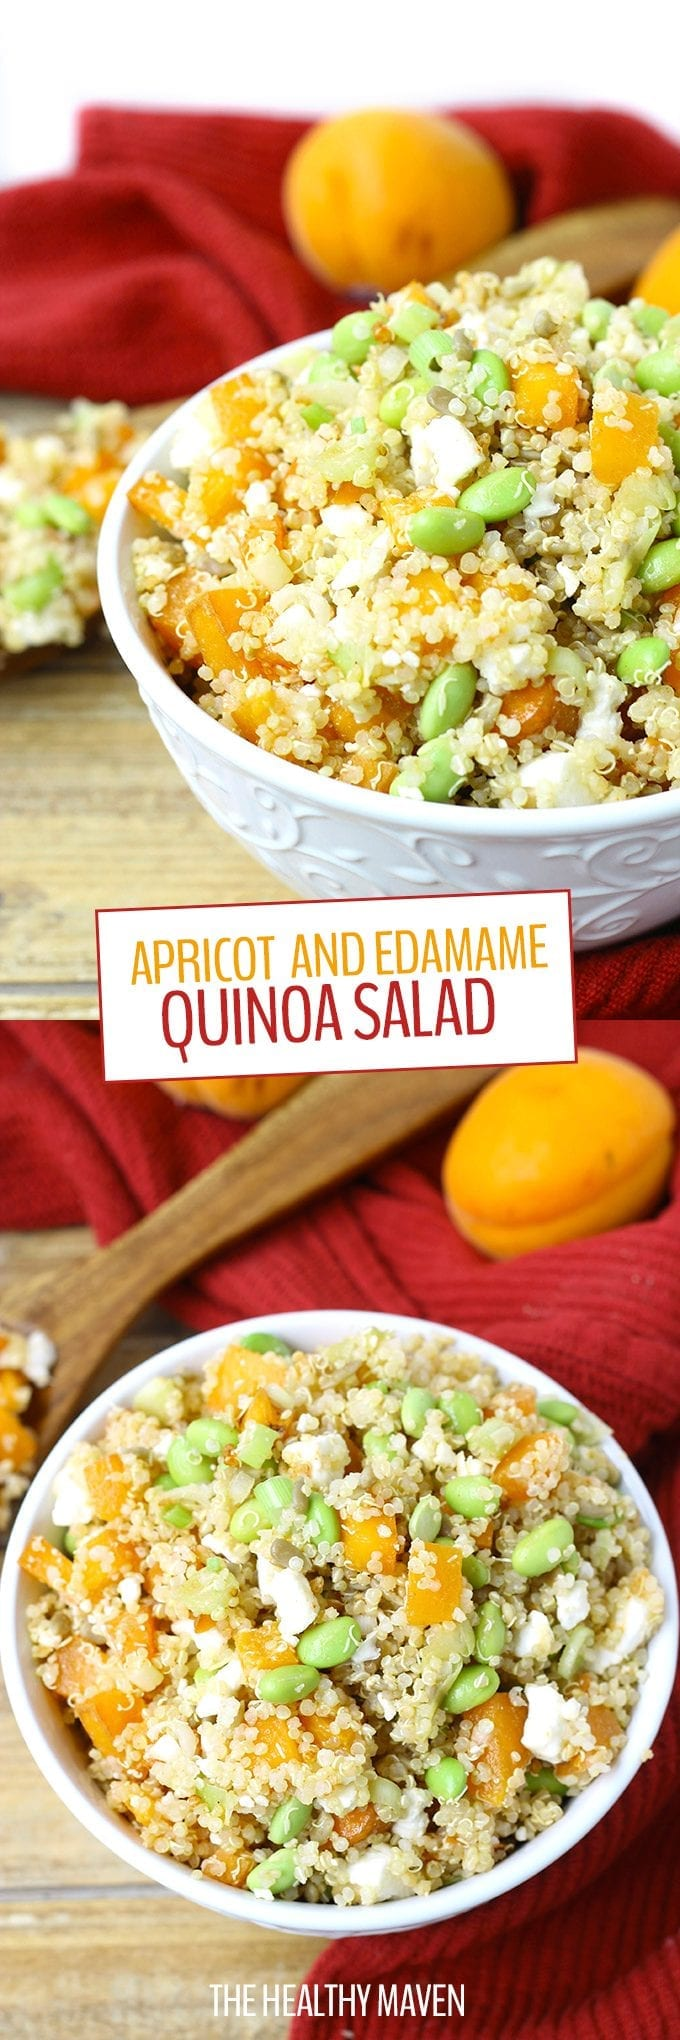 Apricot and Edamame Quinoa Salad - a healthy, delicious and nutritious vegetarian salad recipe perfect for lunch or dinner!